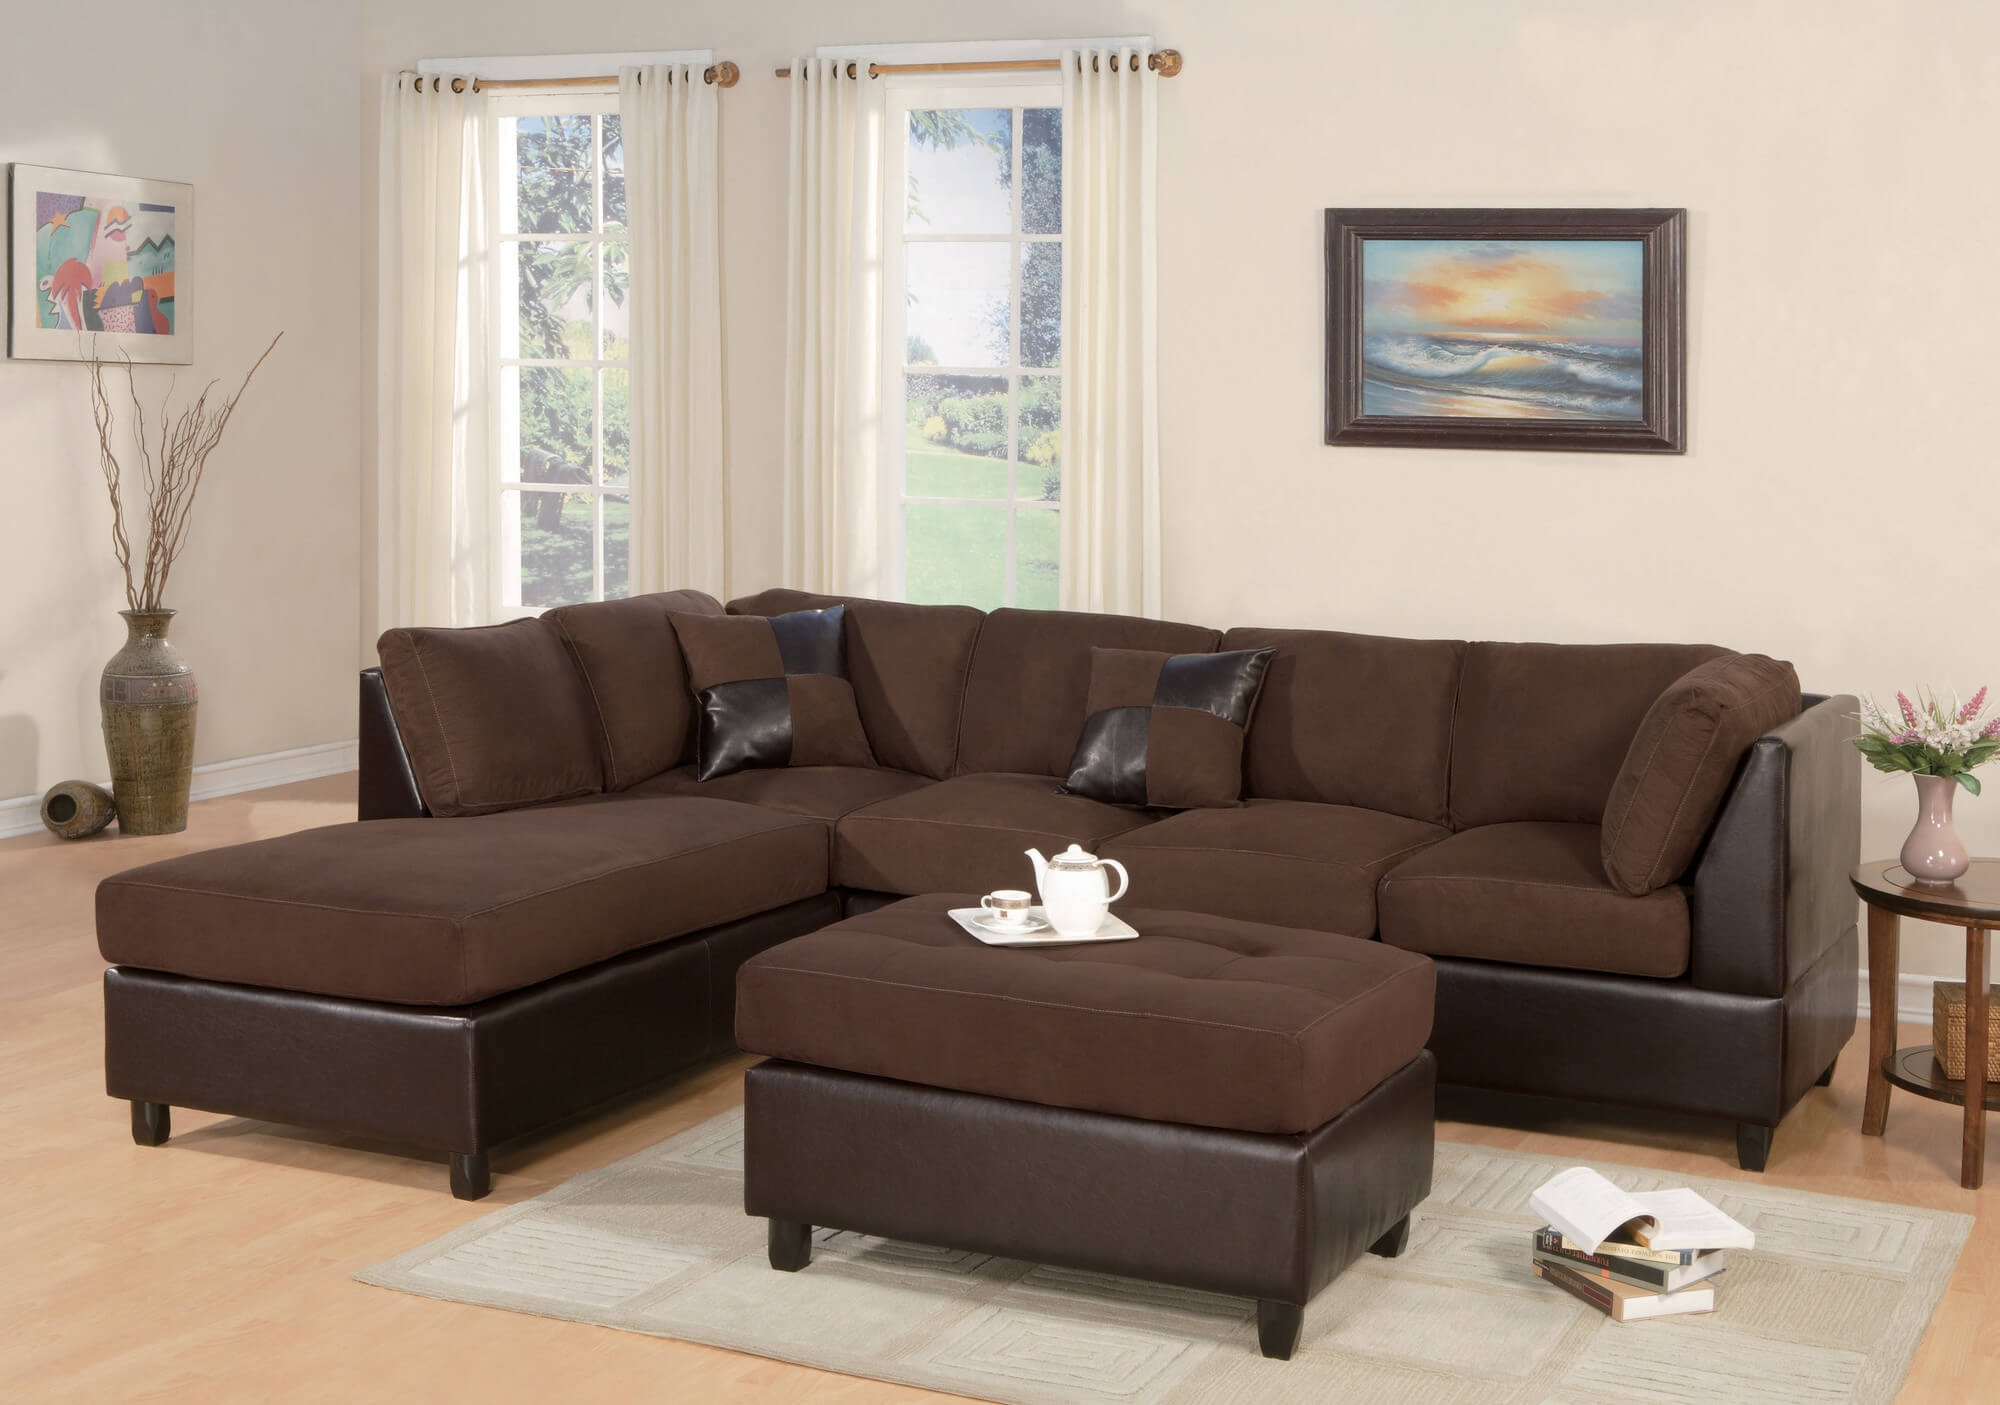 100 Beautiful Sectional Sofas Under 1000 Pertaining To Chocolate Brown Sectional Sofa (#1 of : beautiful sectional sofas - Sectionals, Sofas & Couches